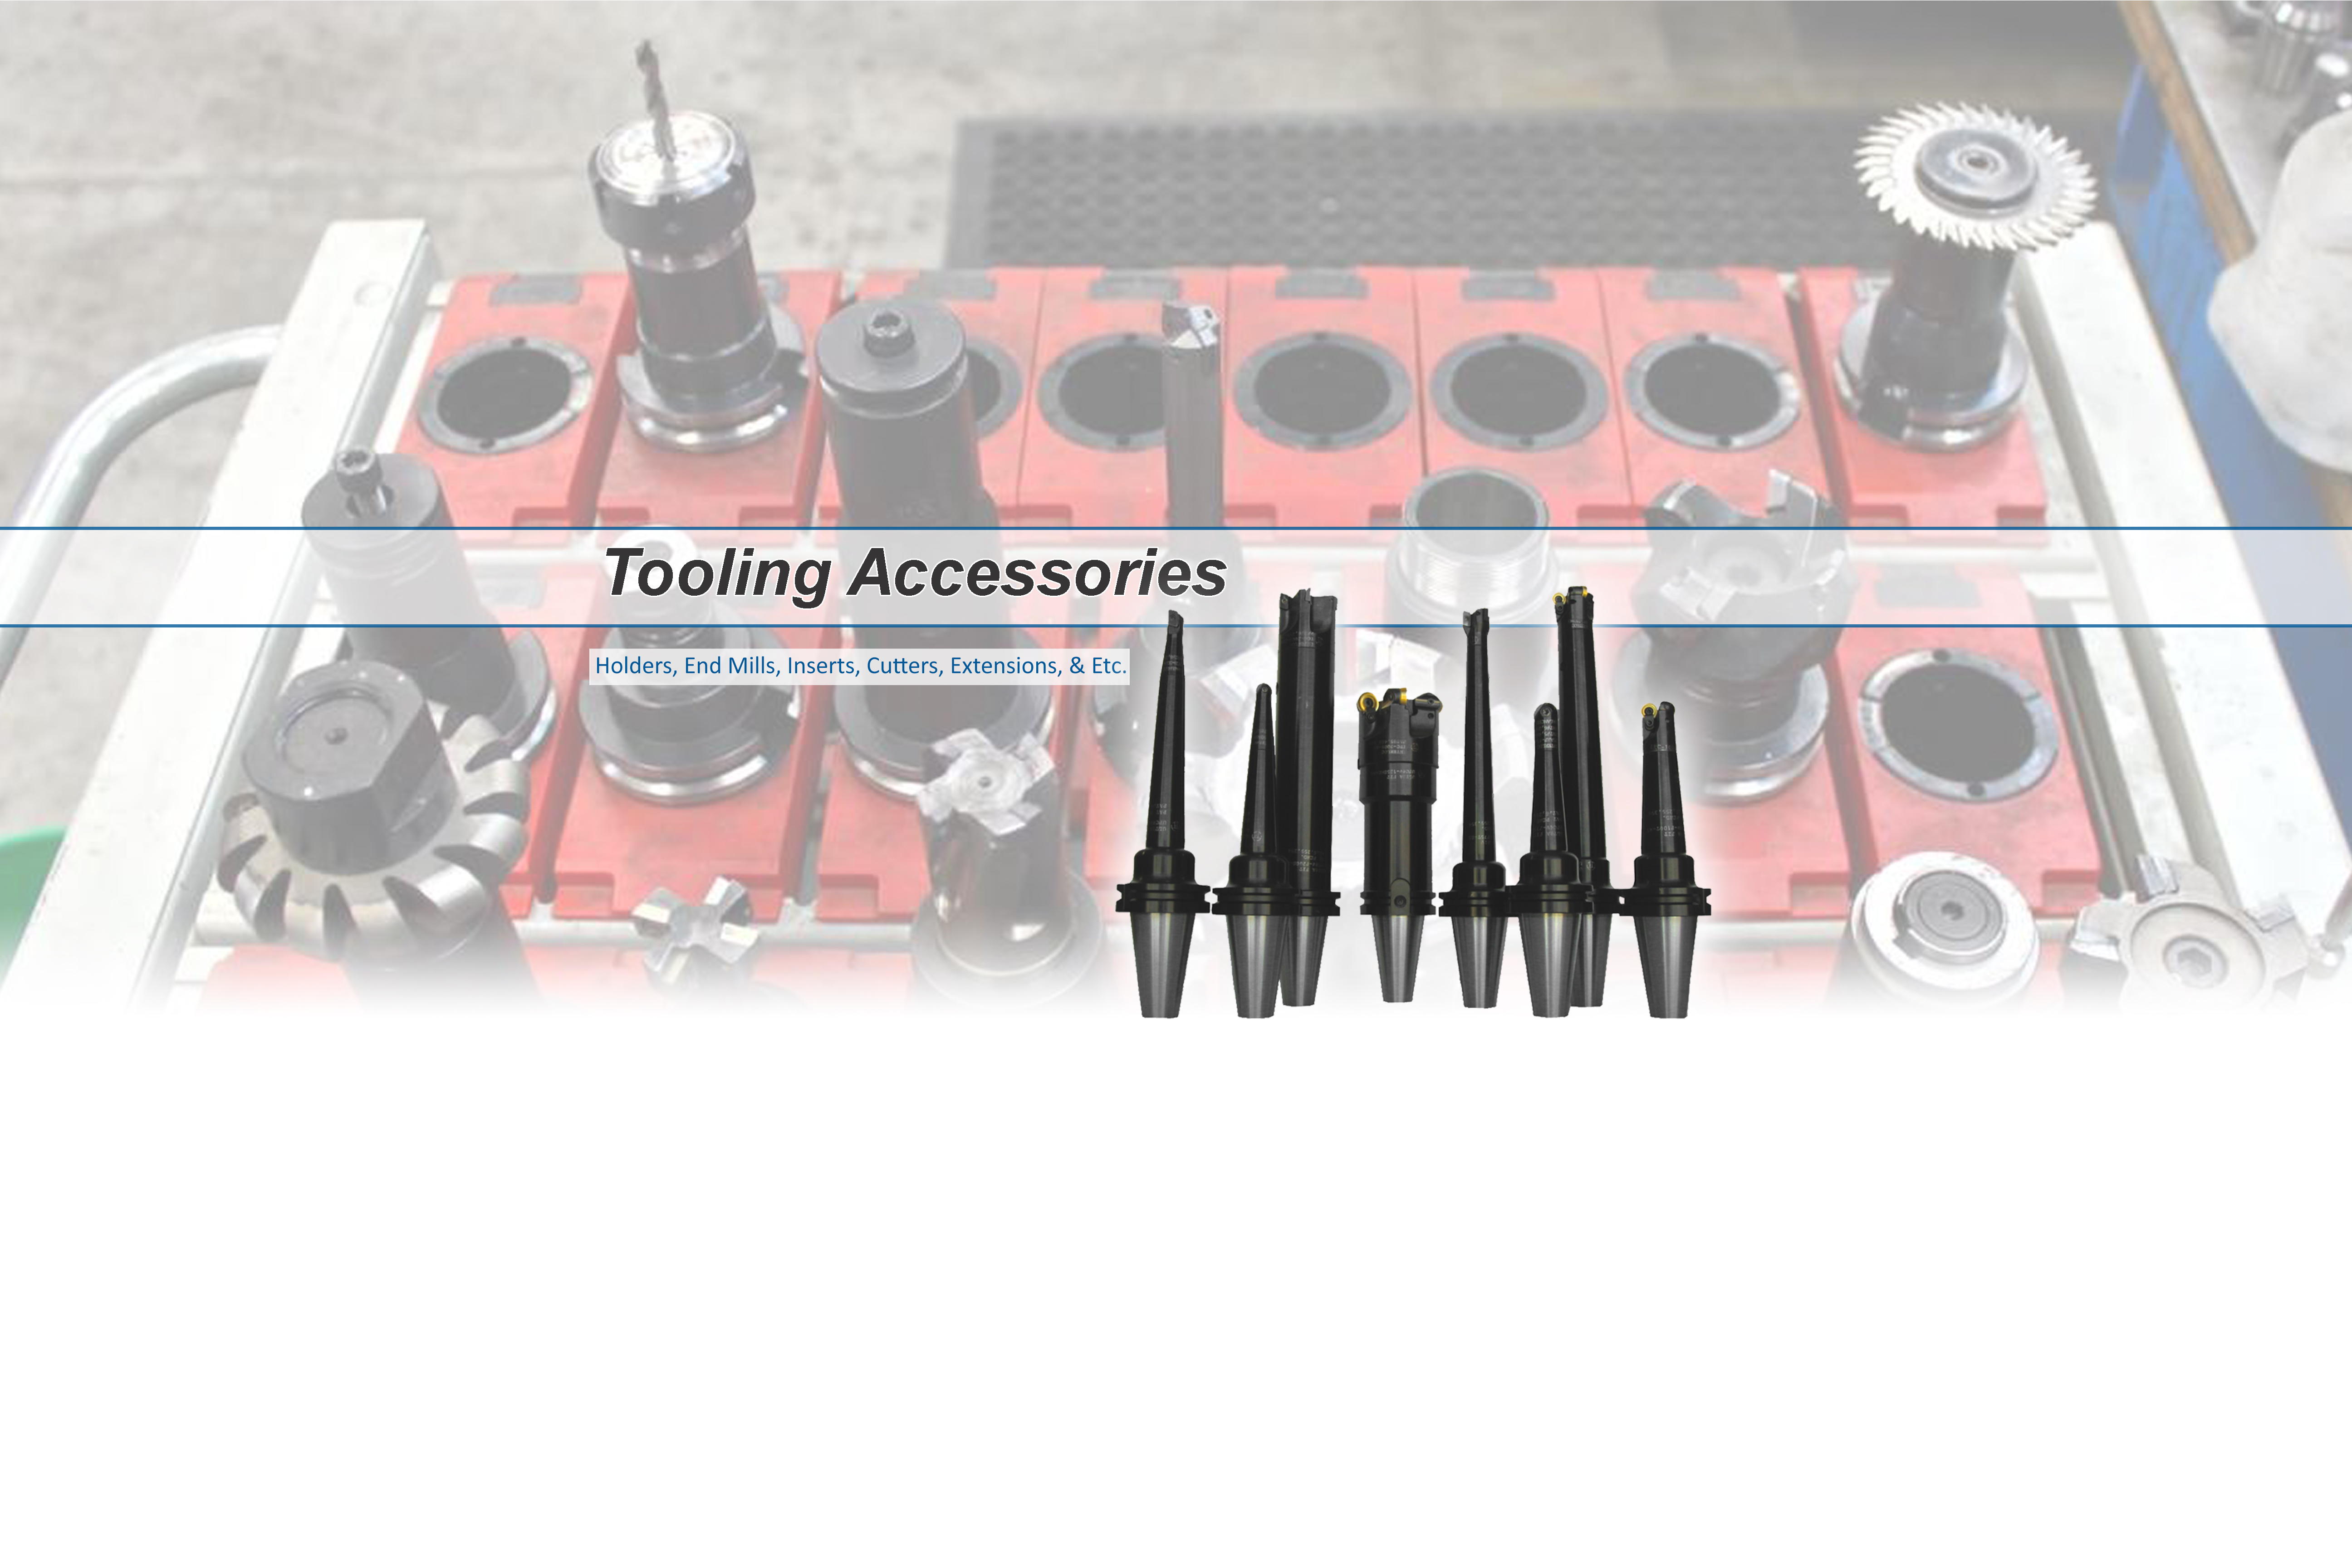 Tooling Accessories